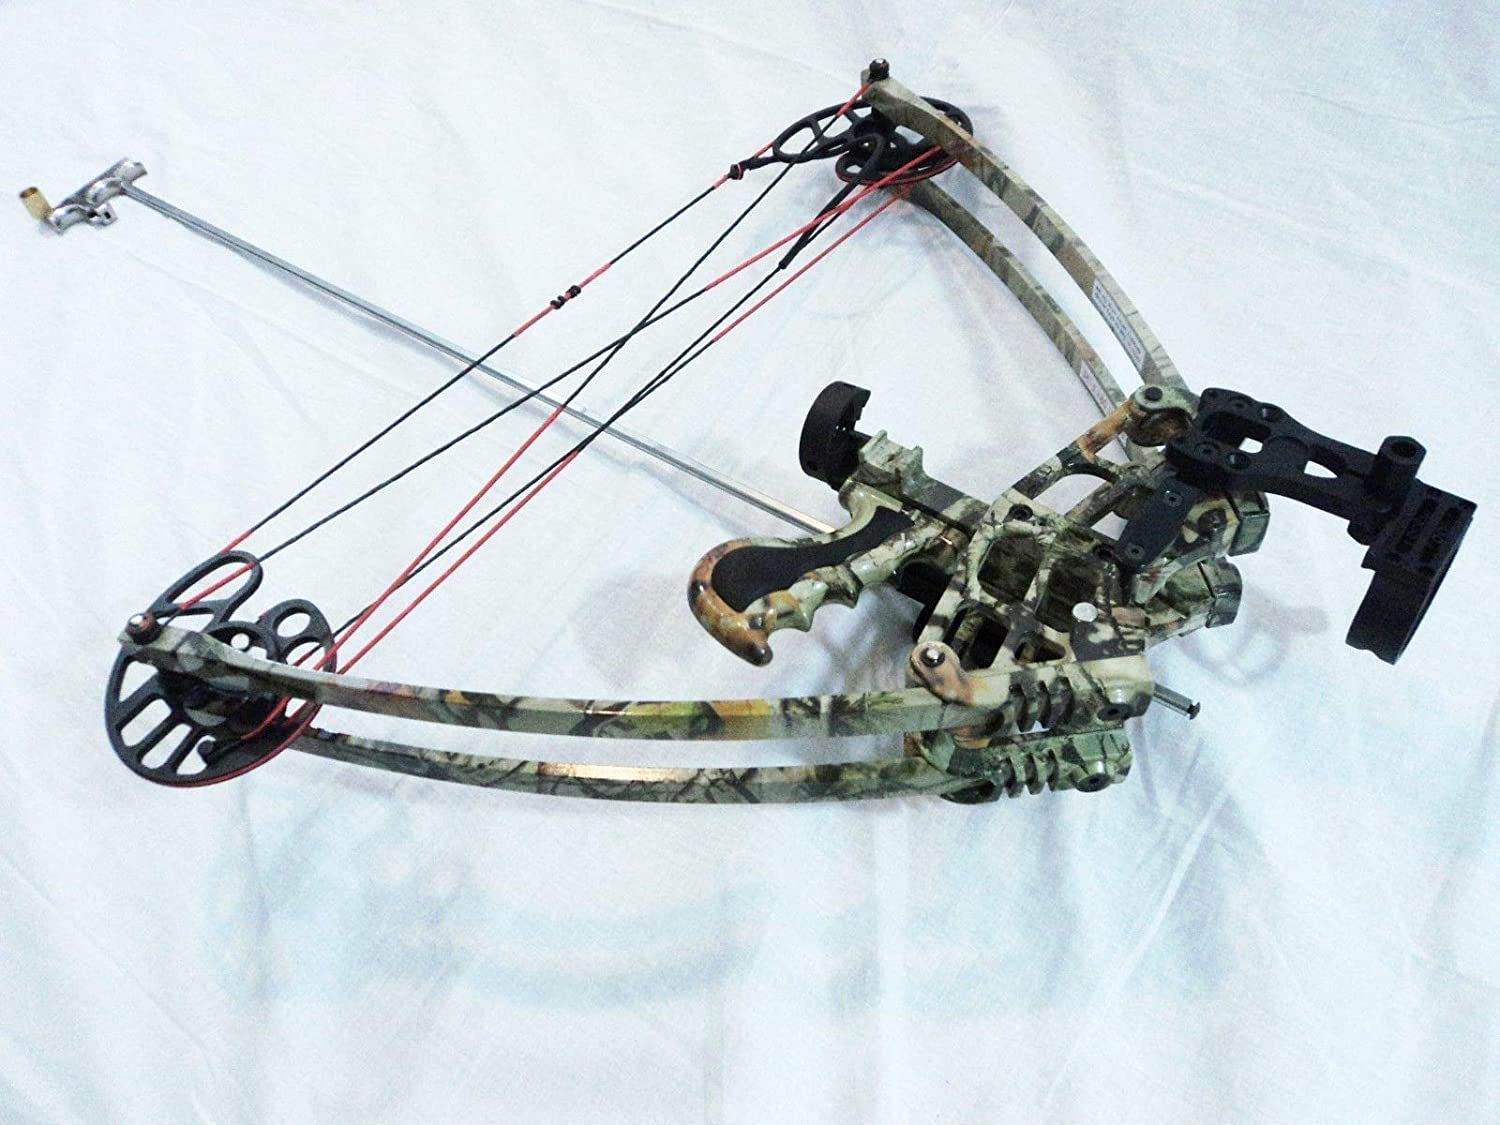 50 lbs, Ambidextrous/Delta Bow with Draw holding device CAMO+ Cylinder quiver ドロー保持装置CAMO +シリンダー弦を備えた50ポンド、両性/デルタボウ